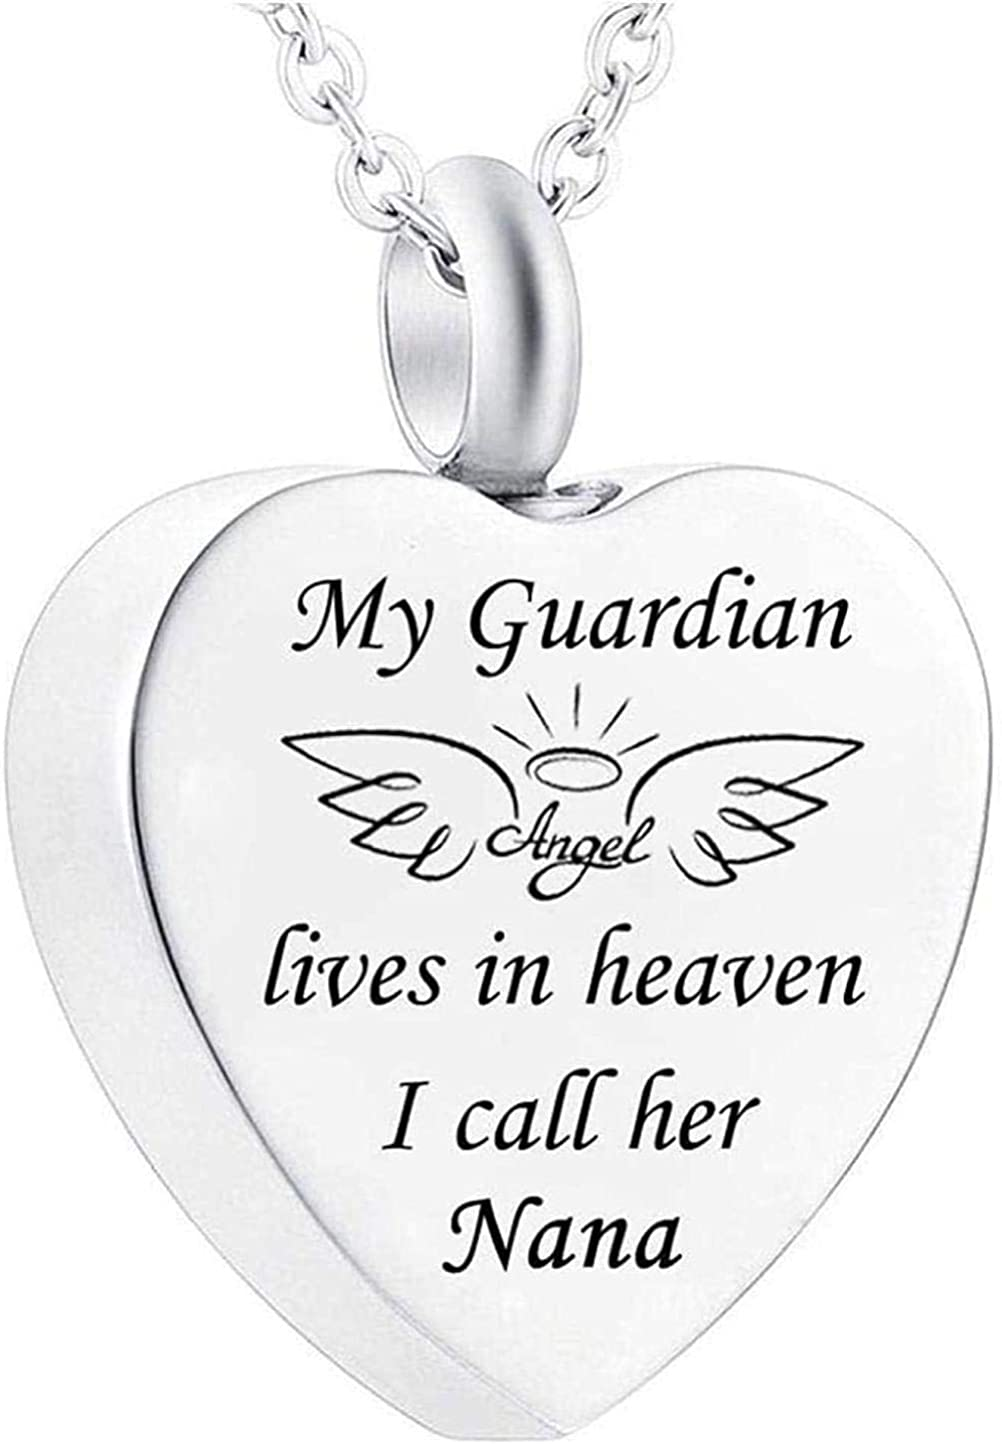 Ashes Chain Cremation Memorial Urn Necklace Cremation Memorial Jewelry My Guardian Angel Nana Cremation Urn Memorial Stainless Steel Heart Pendant Necklace